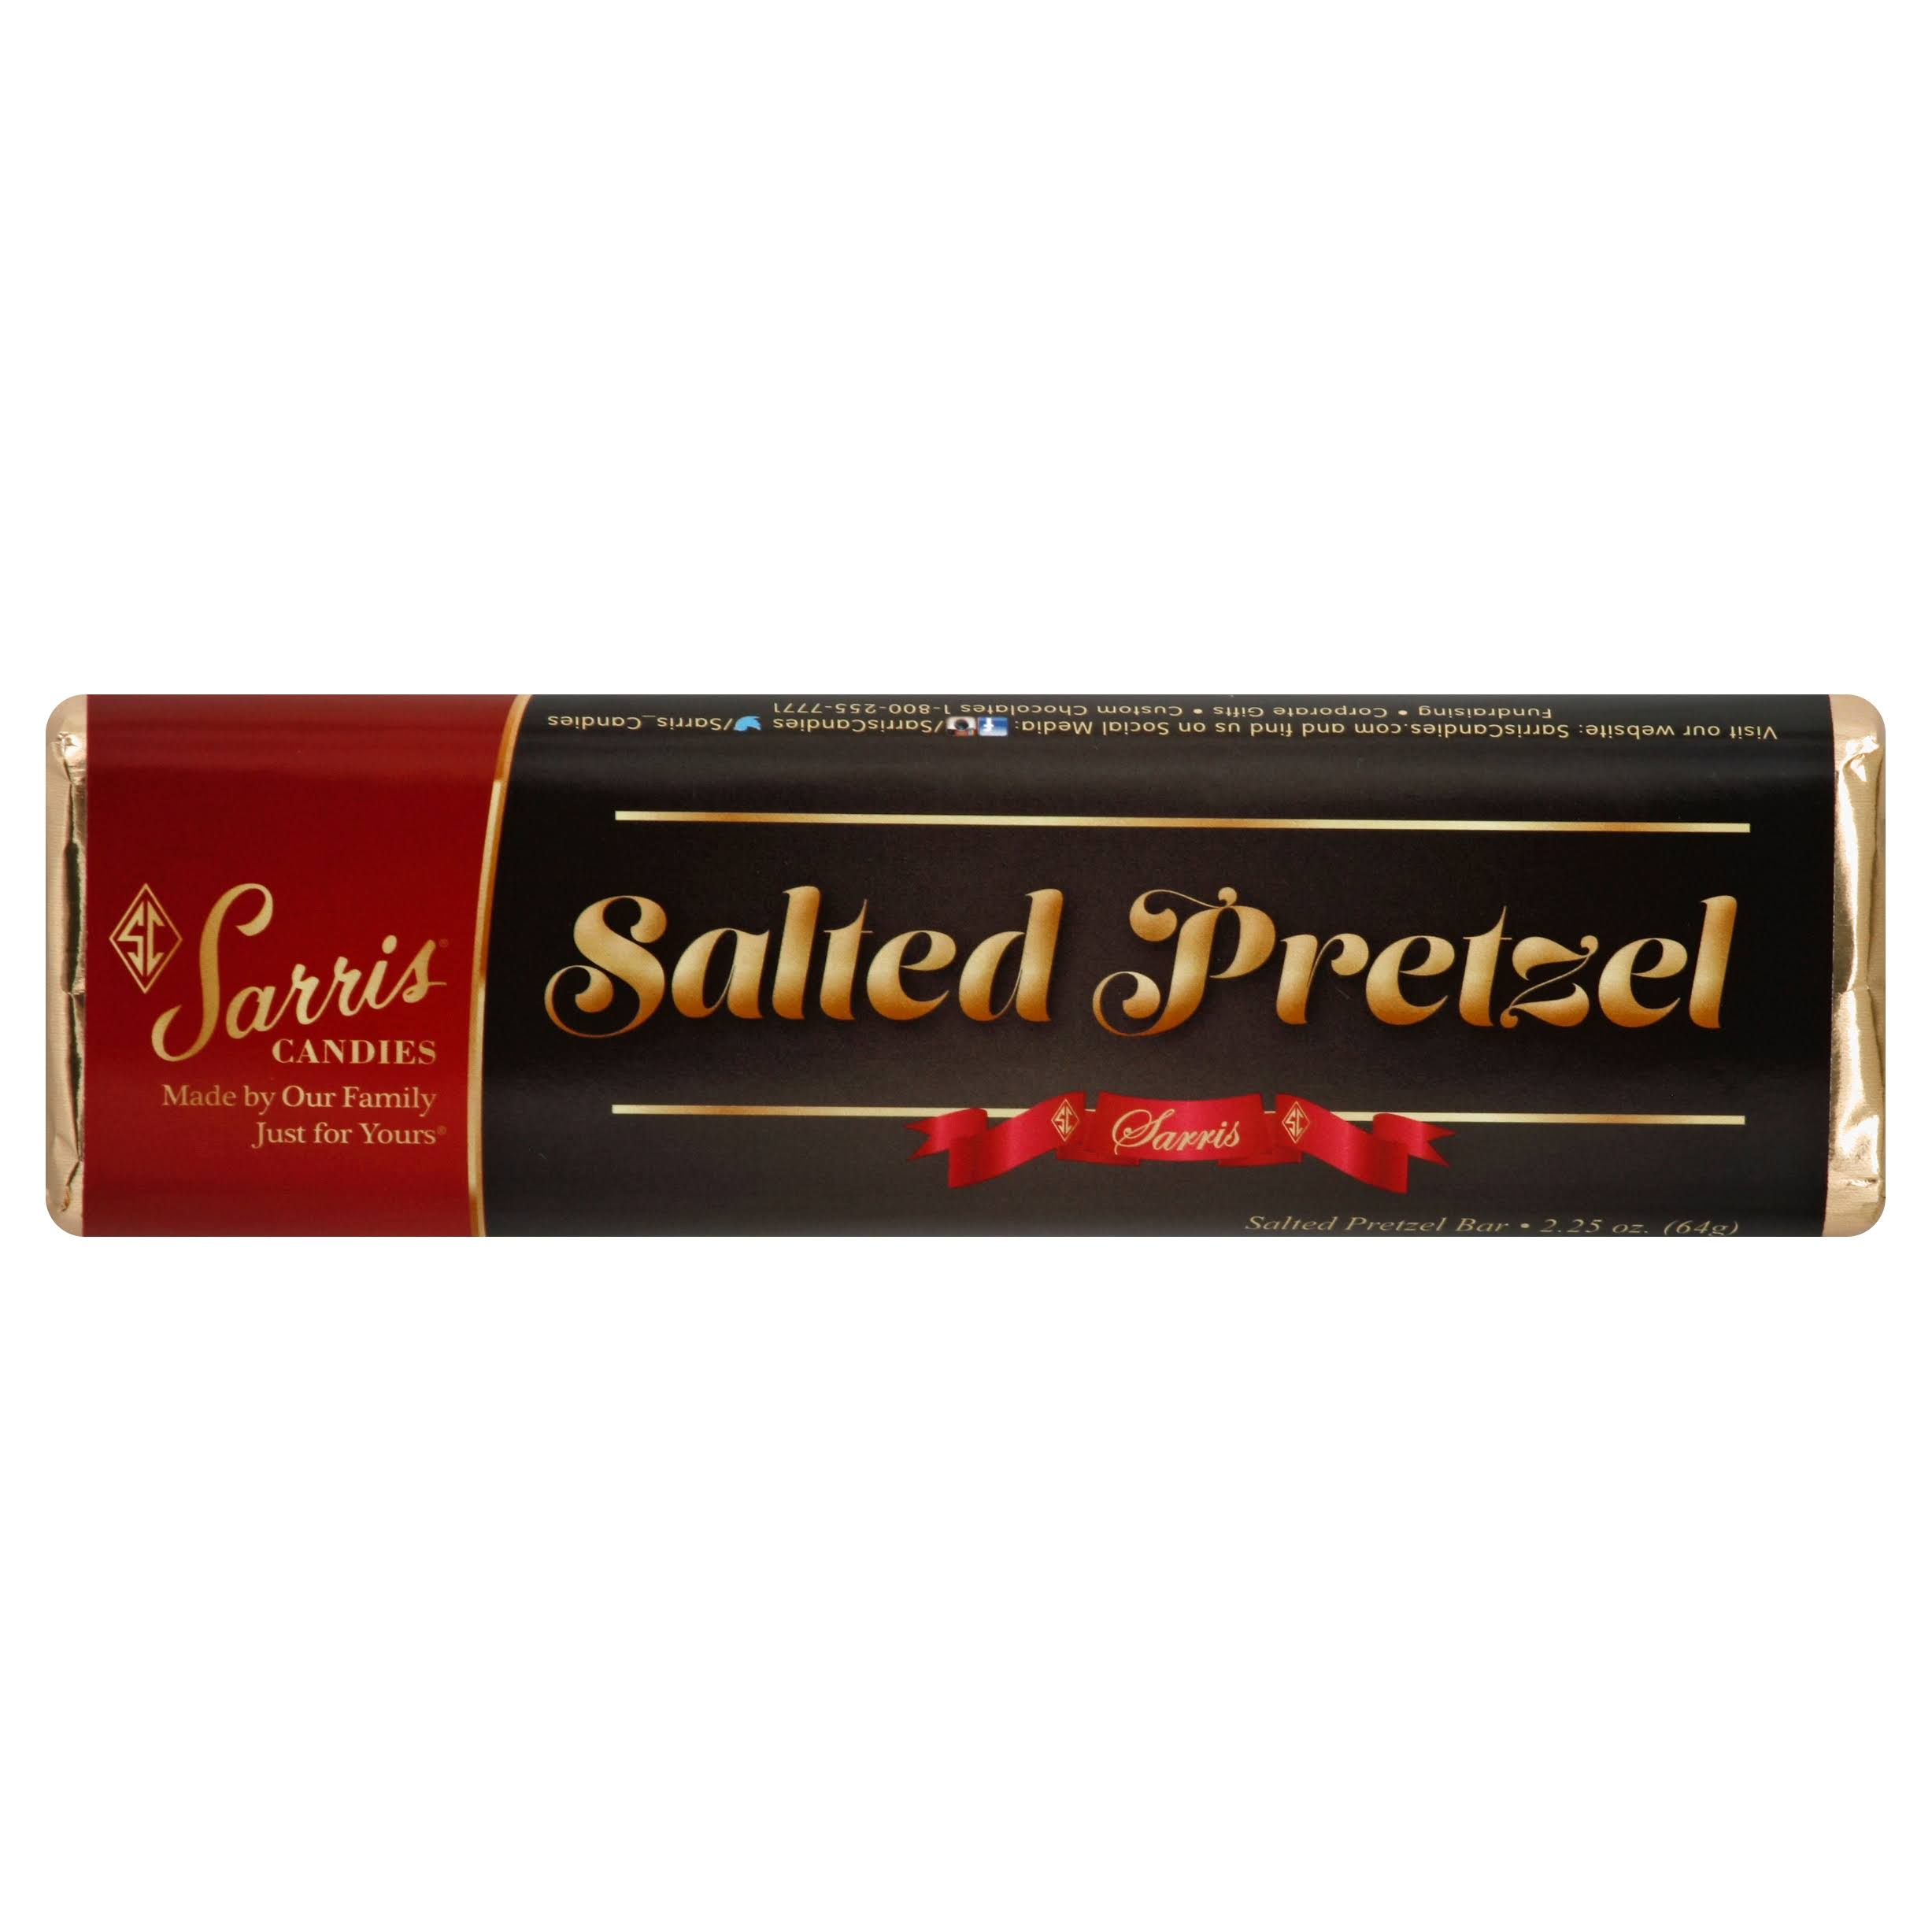 Sarris Candies Salted Pretzel Bar - 2.25 oz